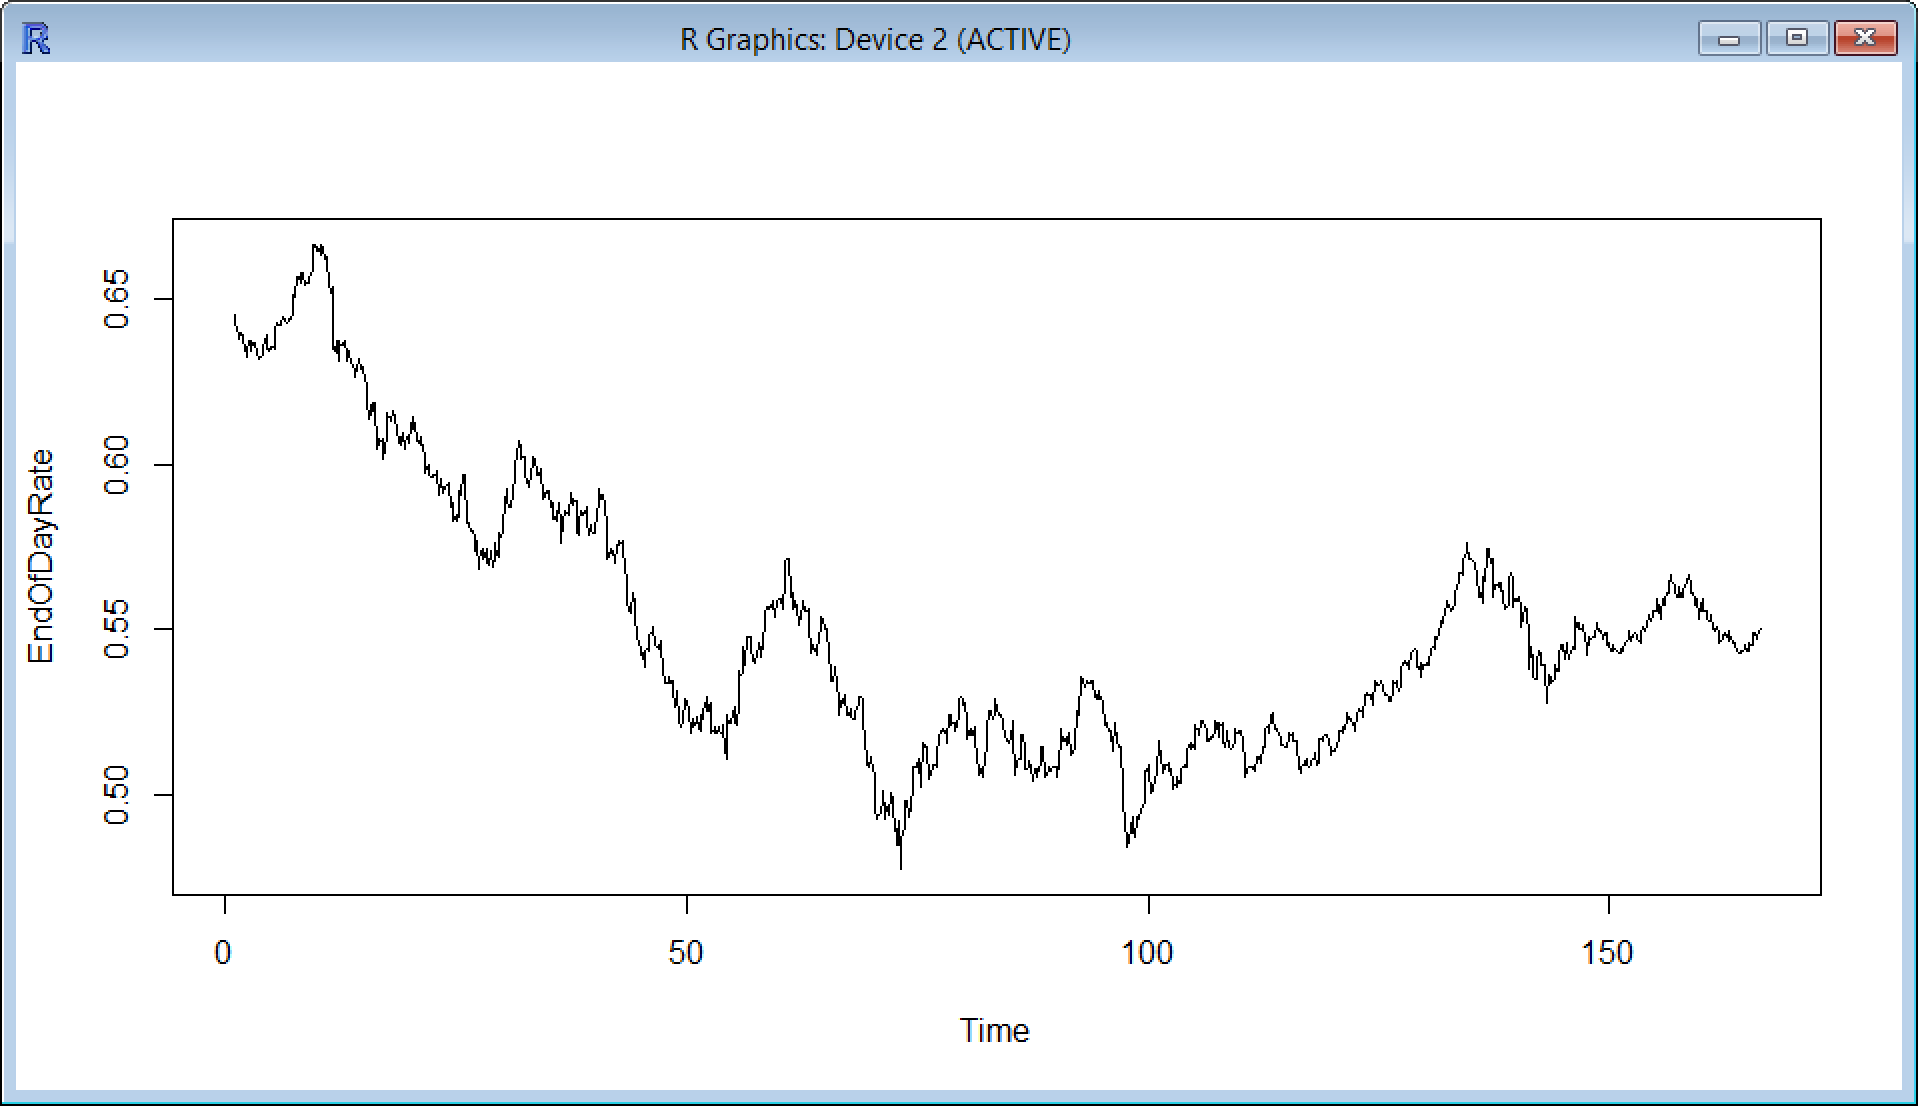 Screen Capture 3 - R Time Series of AUD